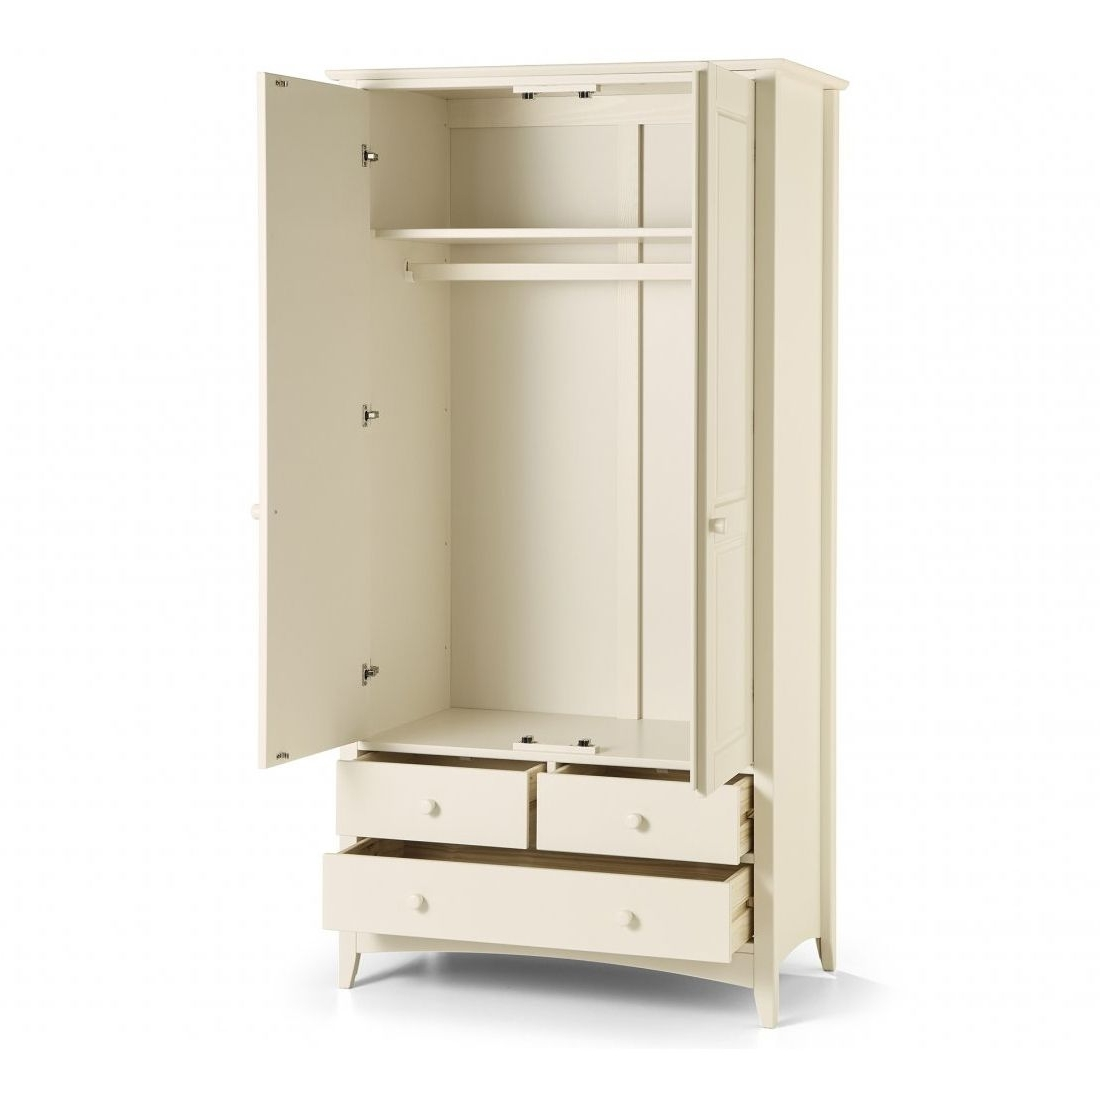 White Combination Wardrobe With 3 Drawers (View 15 of 15)